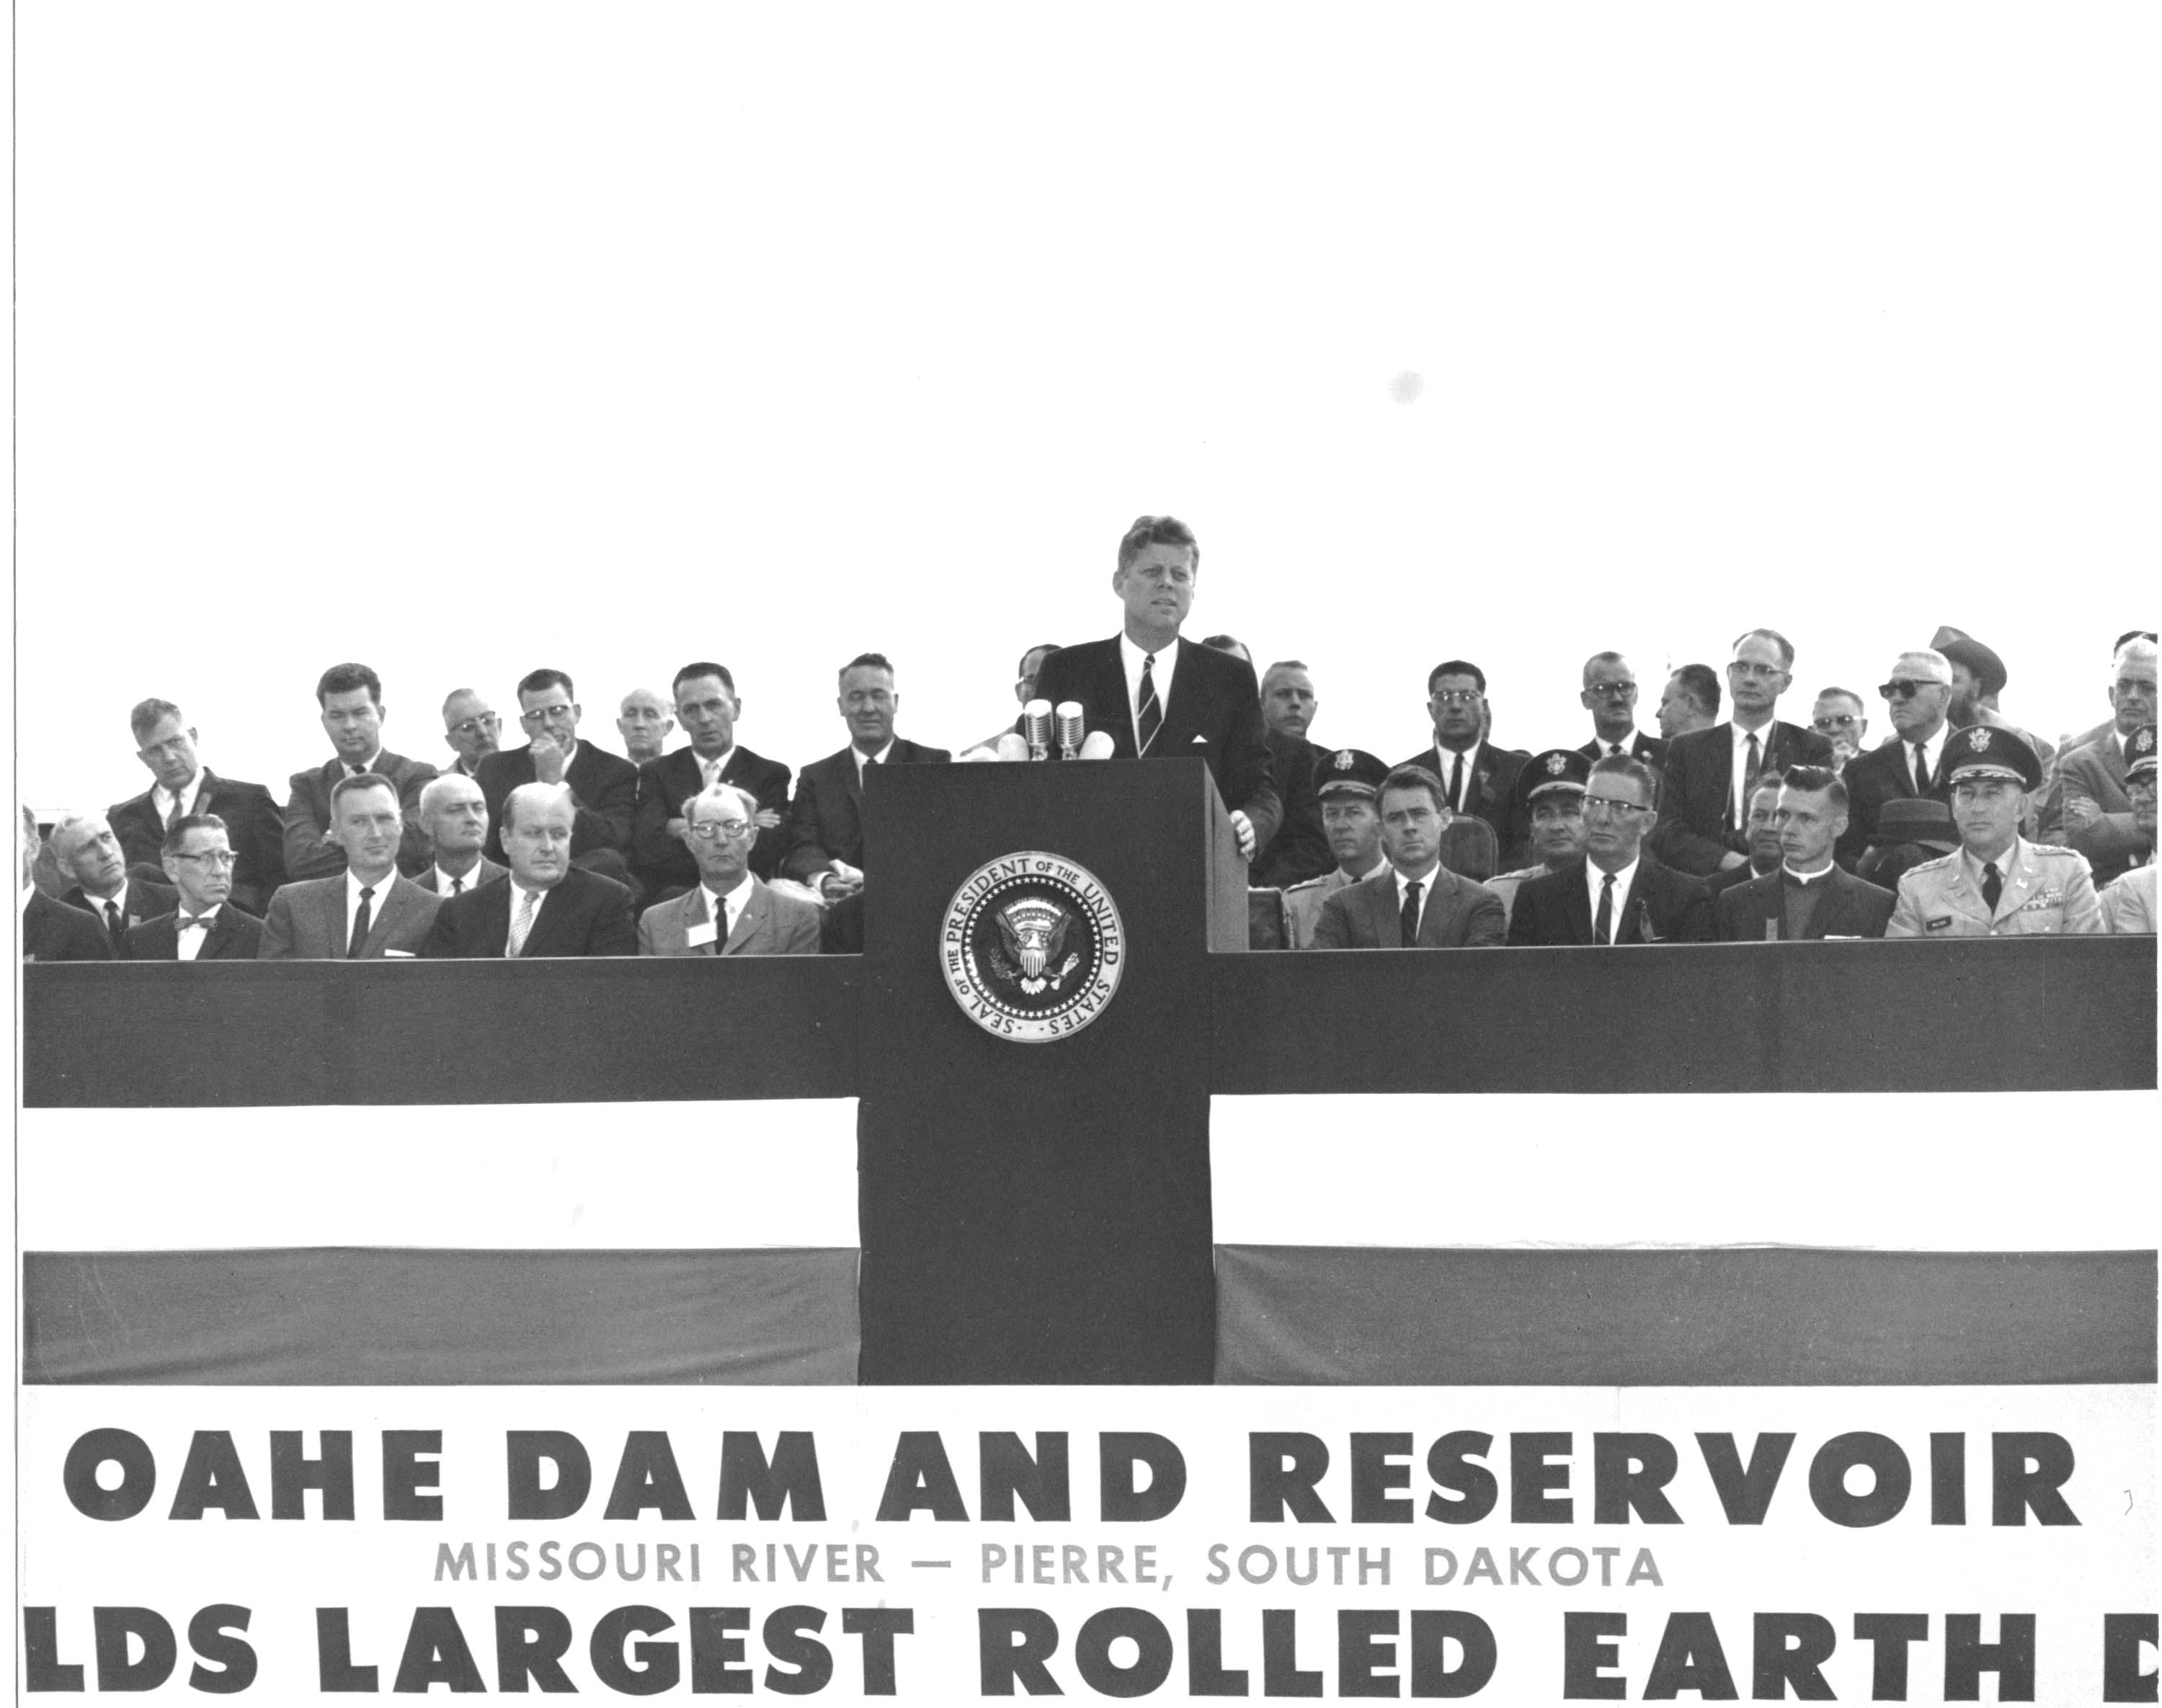 John F. Kennedy speaking at Oahe Dam image